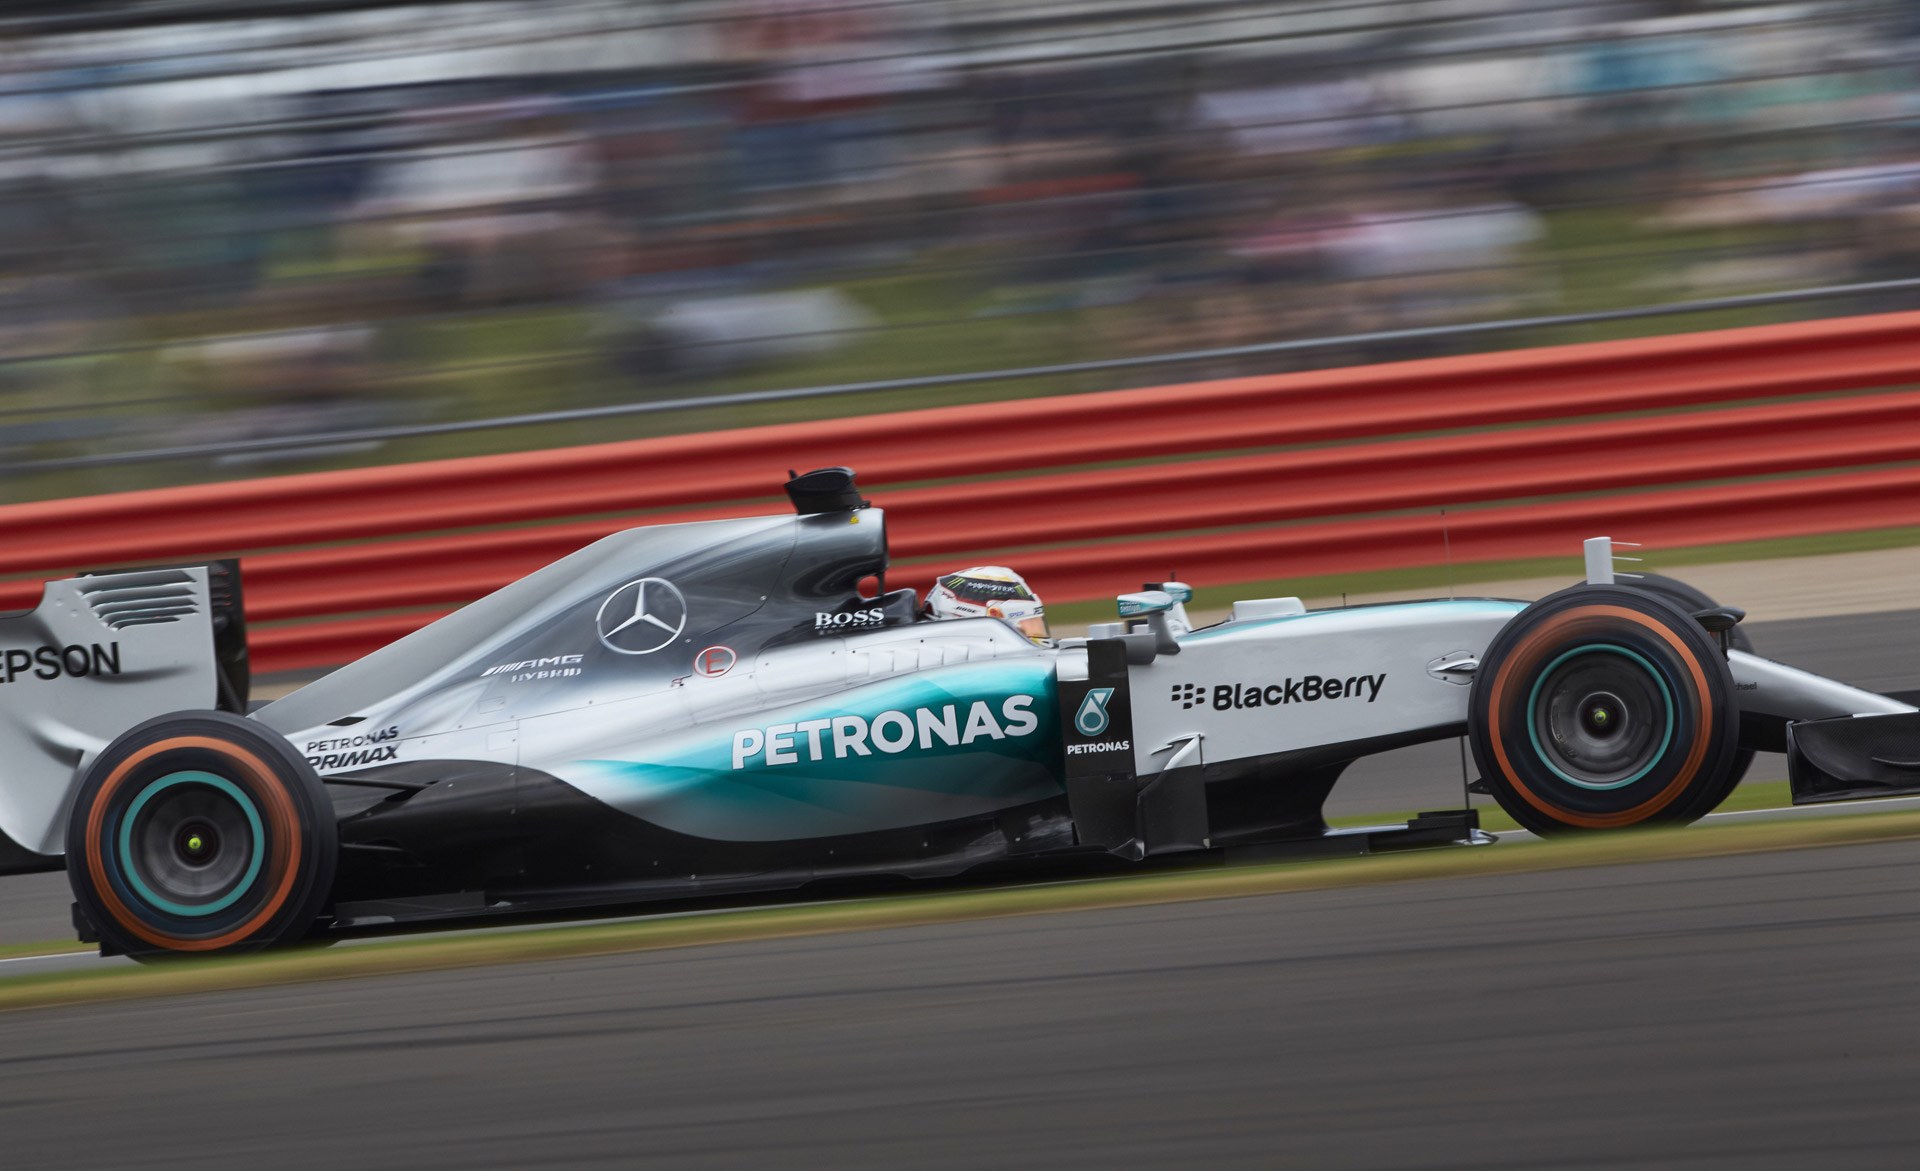 mercedes amg one two finish at 2015 formula one british. Black Bedroom Furniture Sets. Home Design Ideas